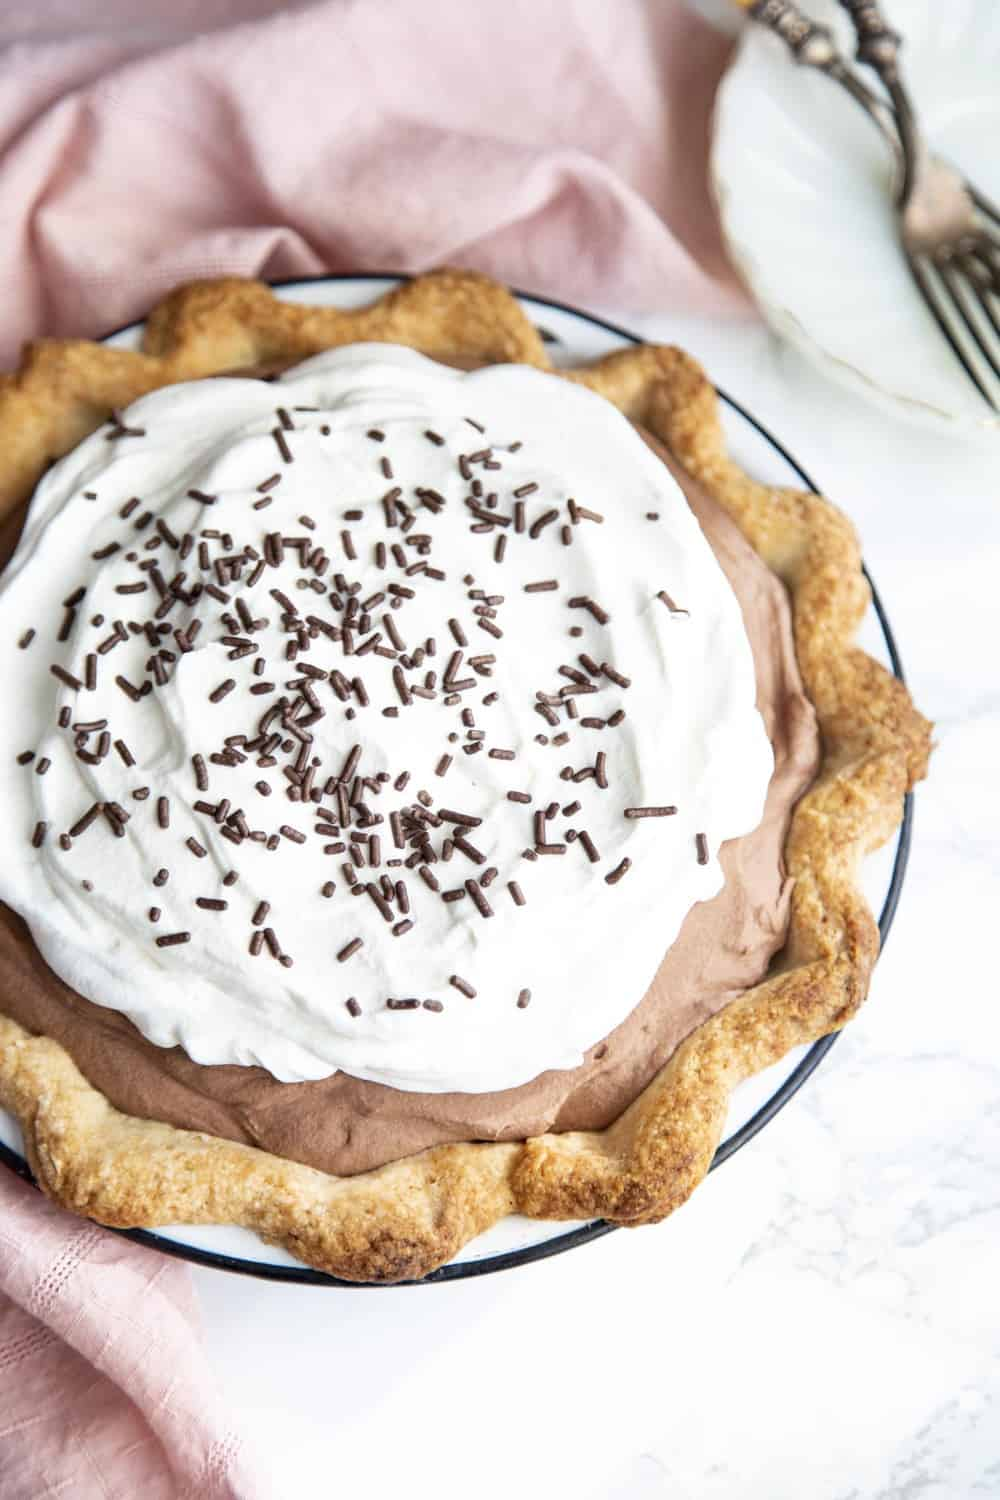 French Silk pie with whipped topping and chocolate sprinkles.